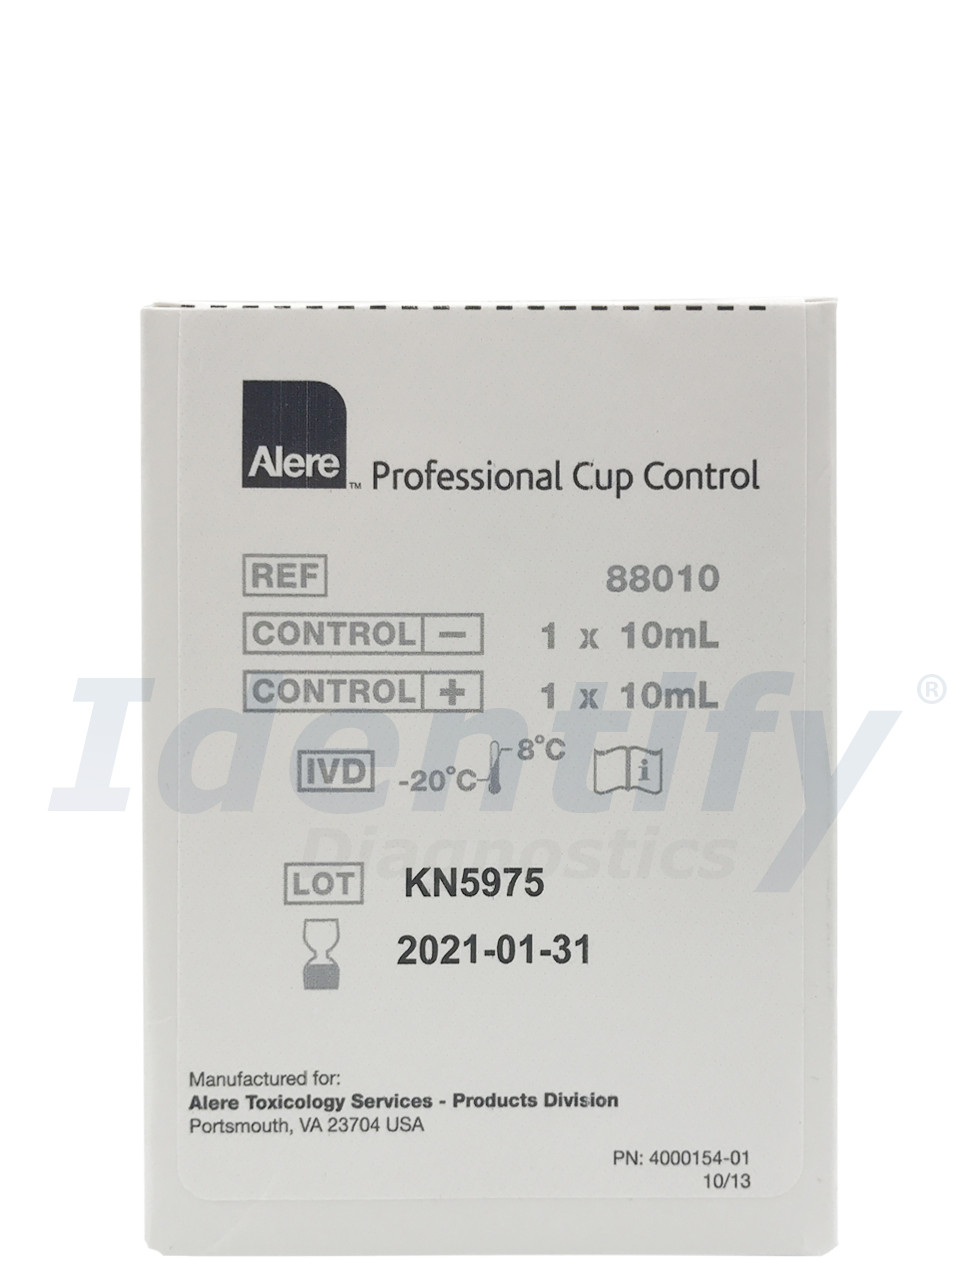 Best Synthetic Urine 2021 Alere Liquid Control Urine   Professional Cup Control 88010   Free